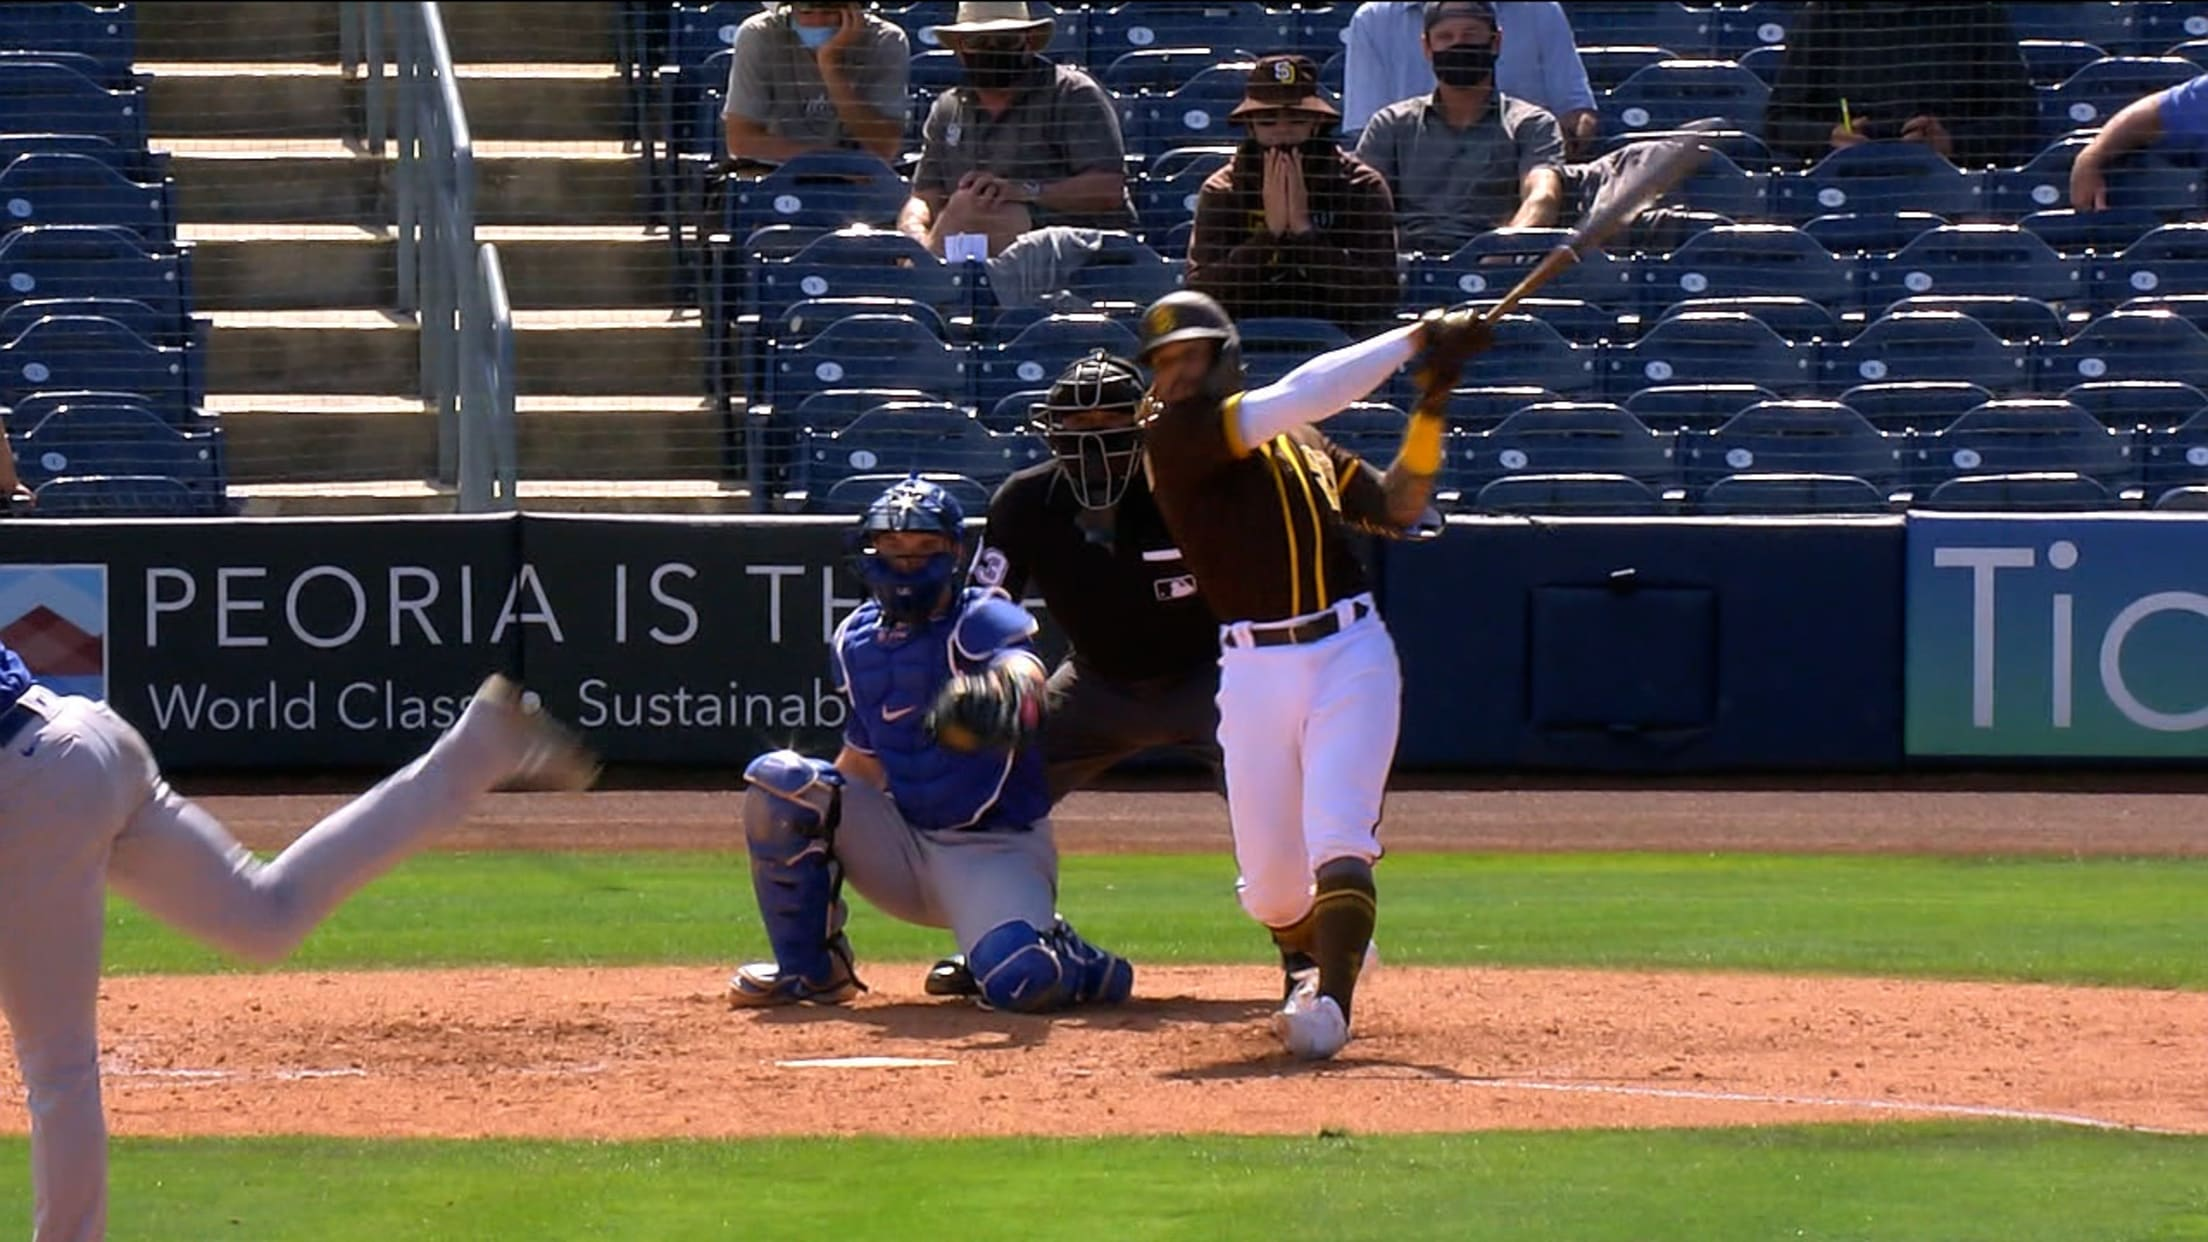 Luis Campusano's hard-hit double